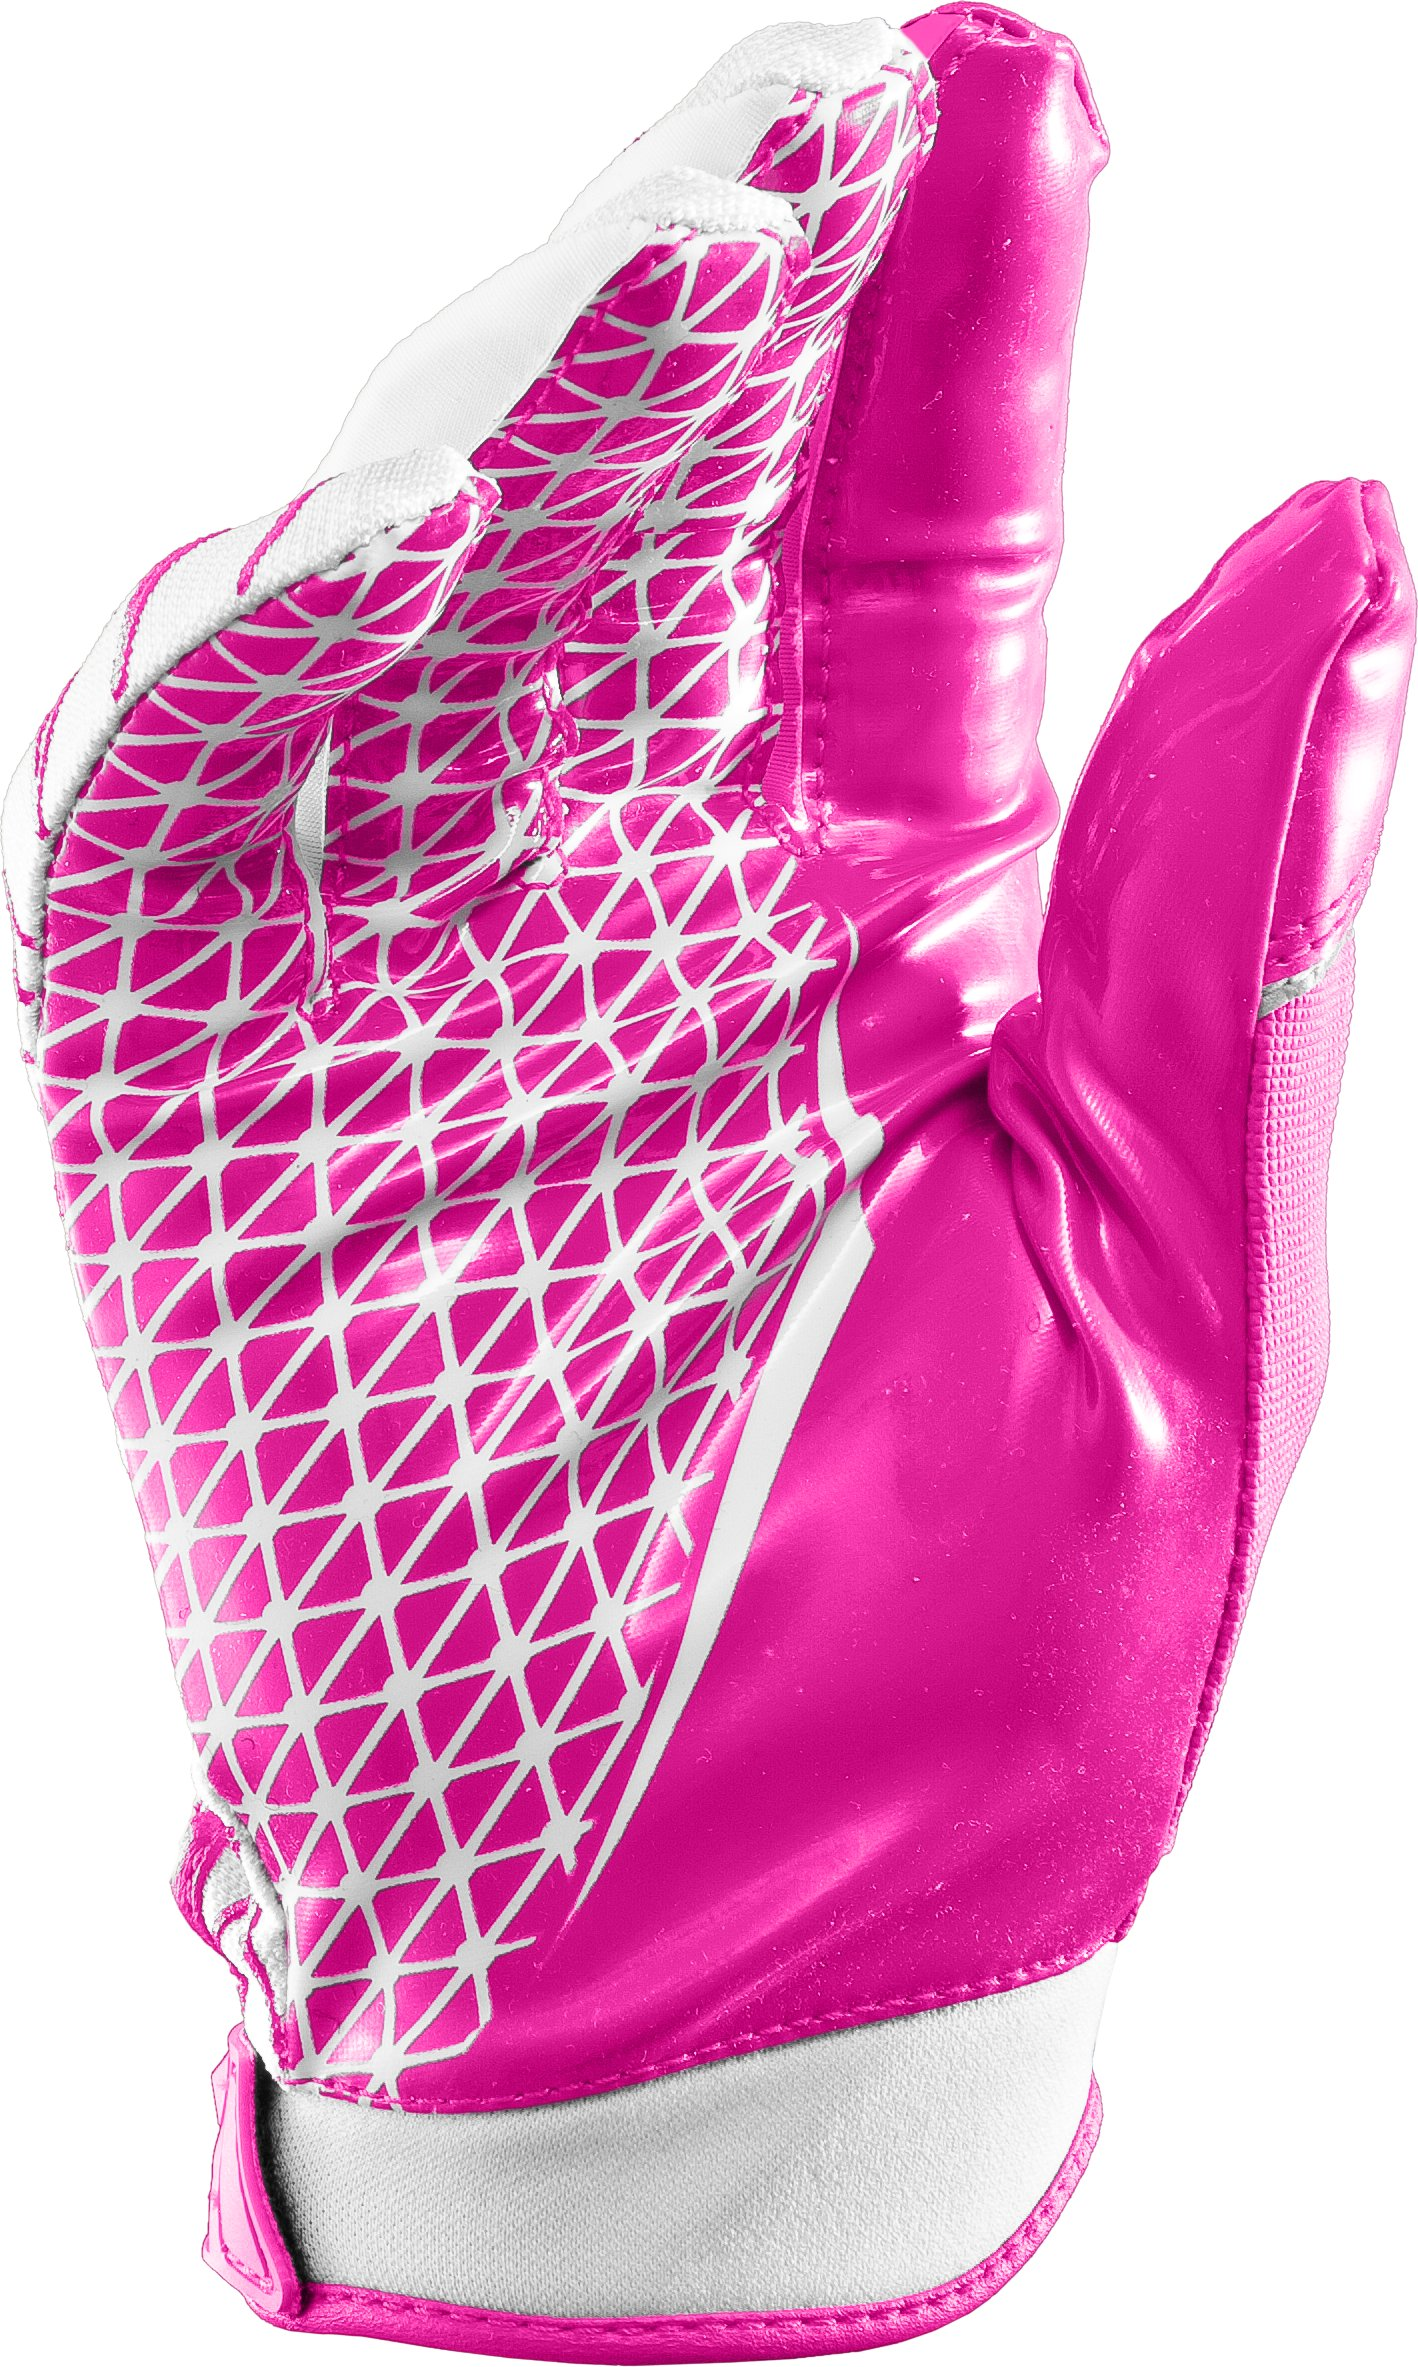 Men's UA Warp Speed Football Gloves, Tropic Pink